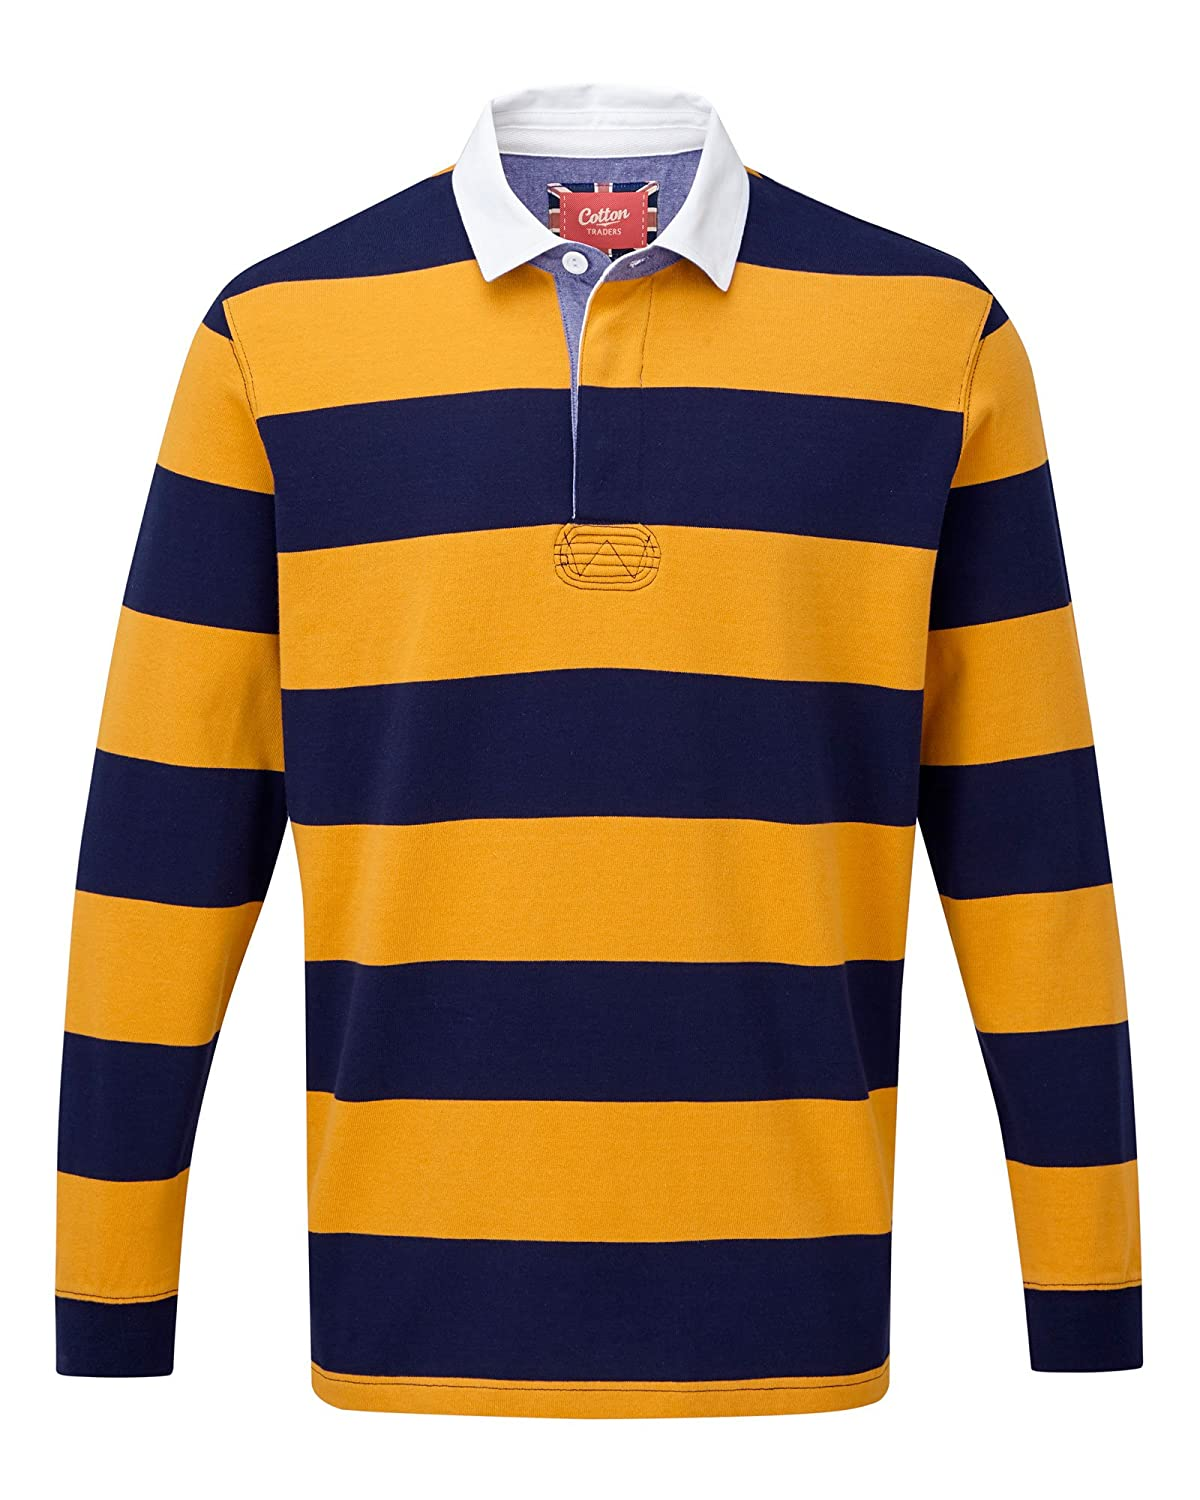 bc57320e4d6 Cotton Traders Rugby Shirts Shop - DREAMWORKS